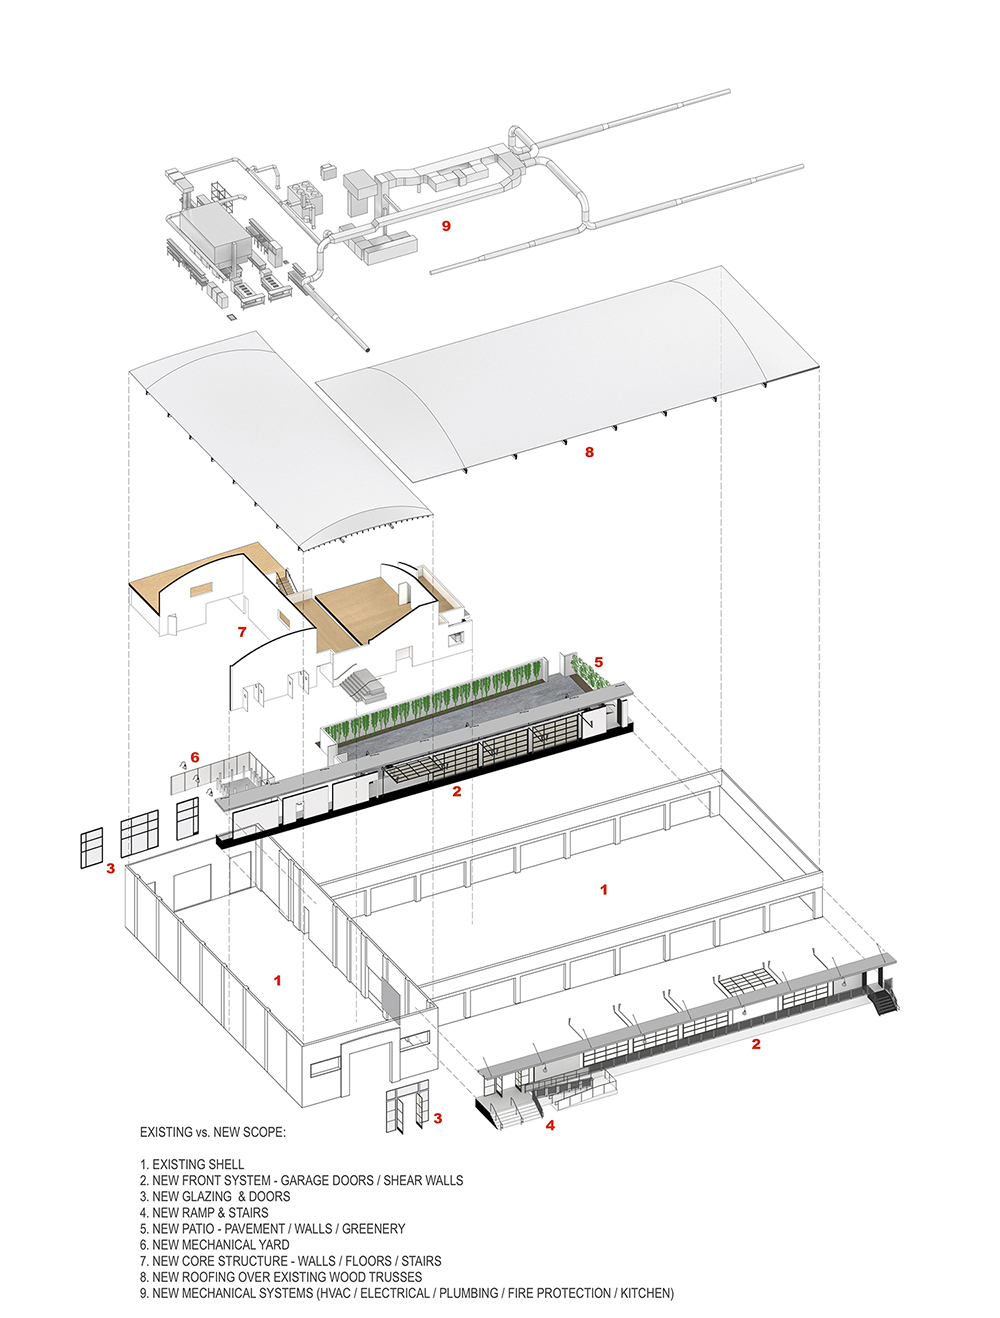 Old and New Diagram Studio Antares A + E}